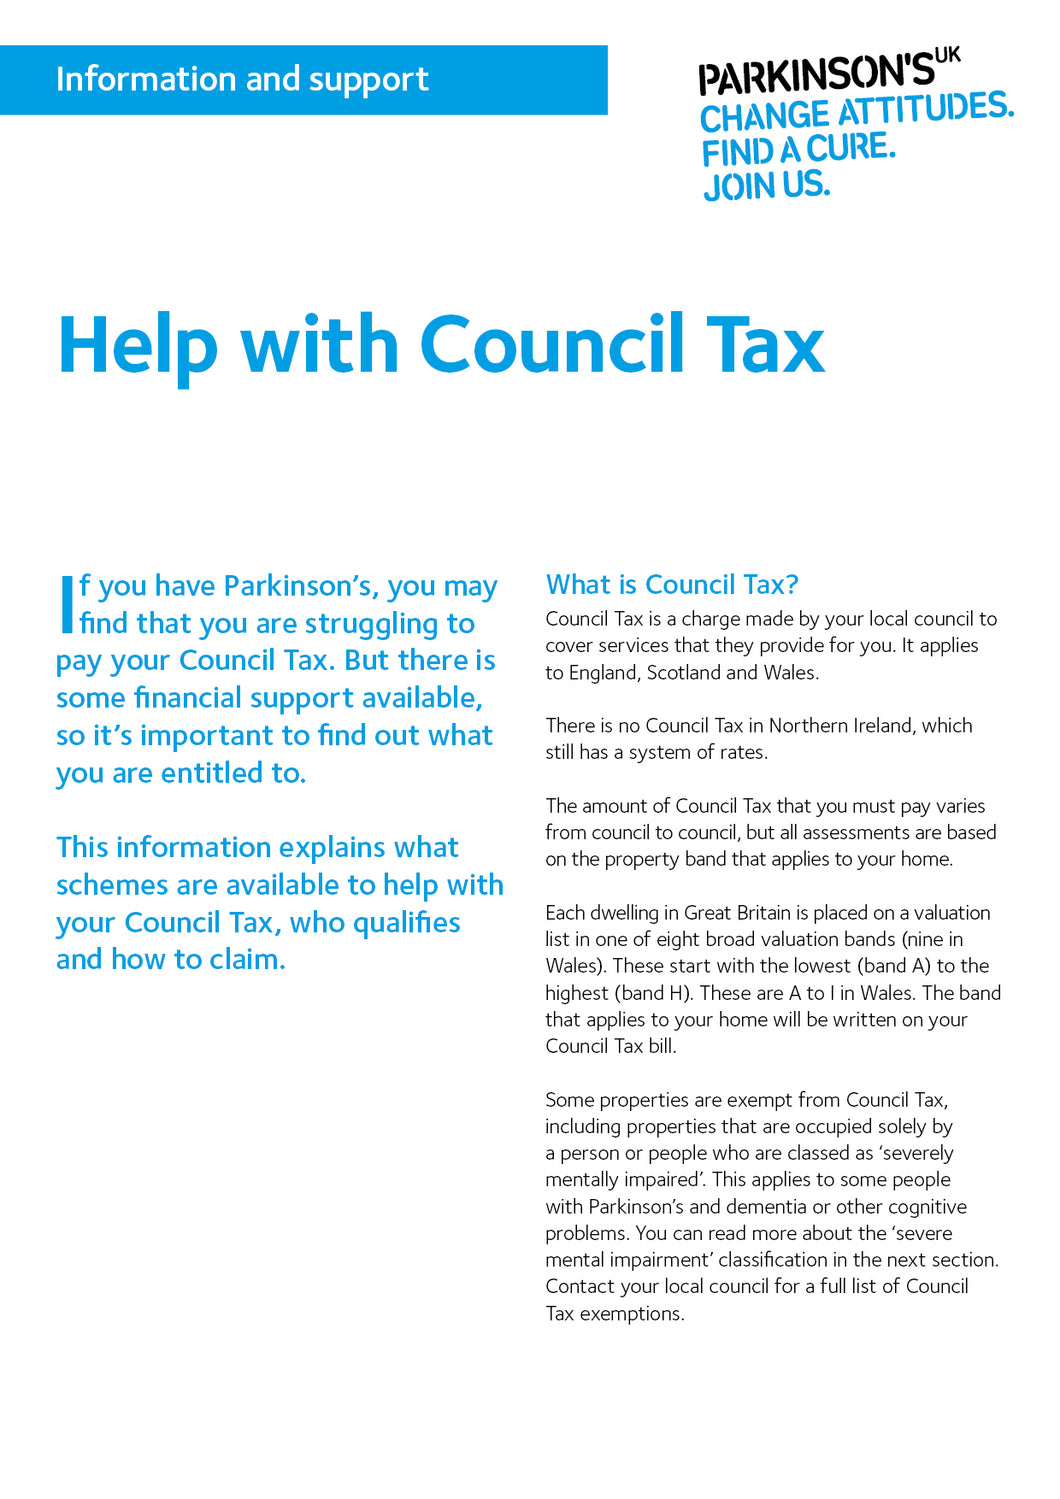 Help with Council Tax - Parkinson's shop